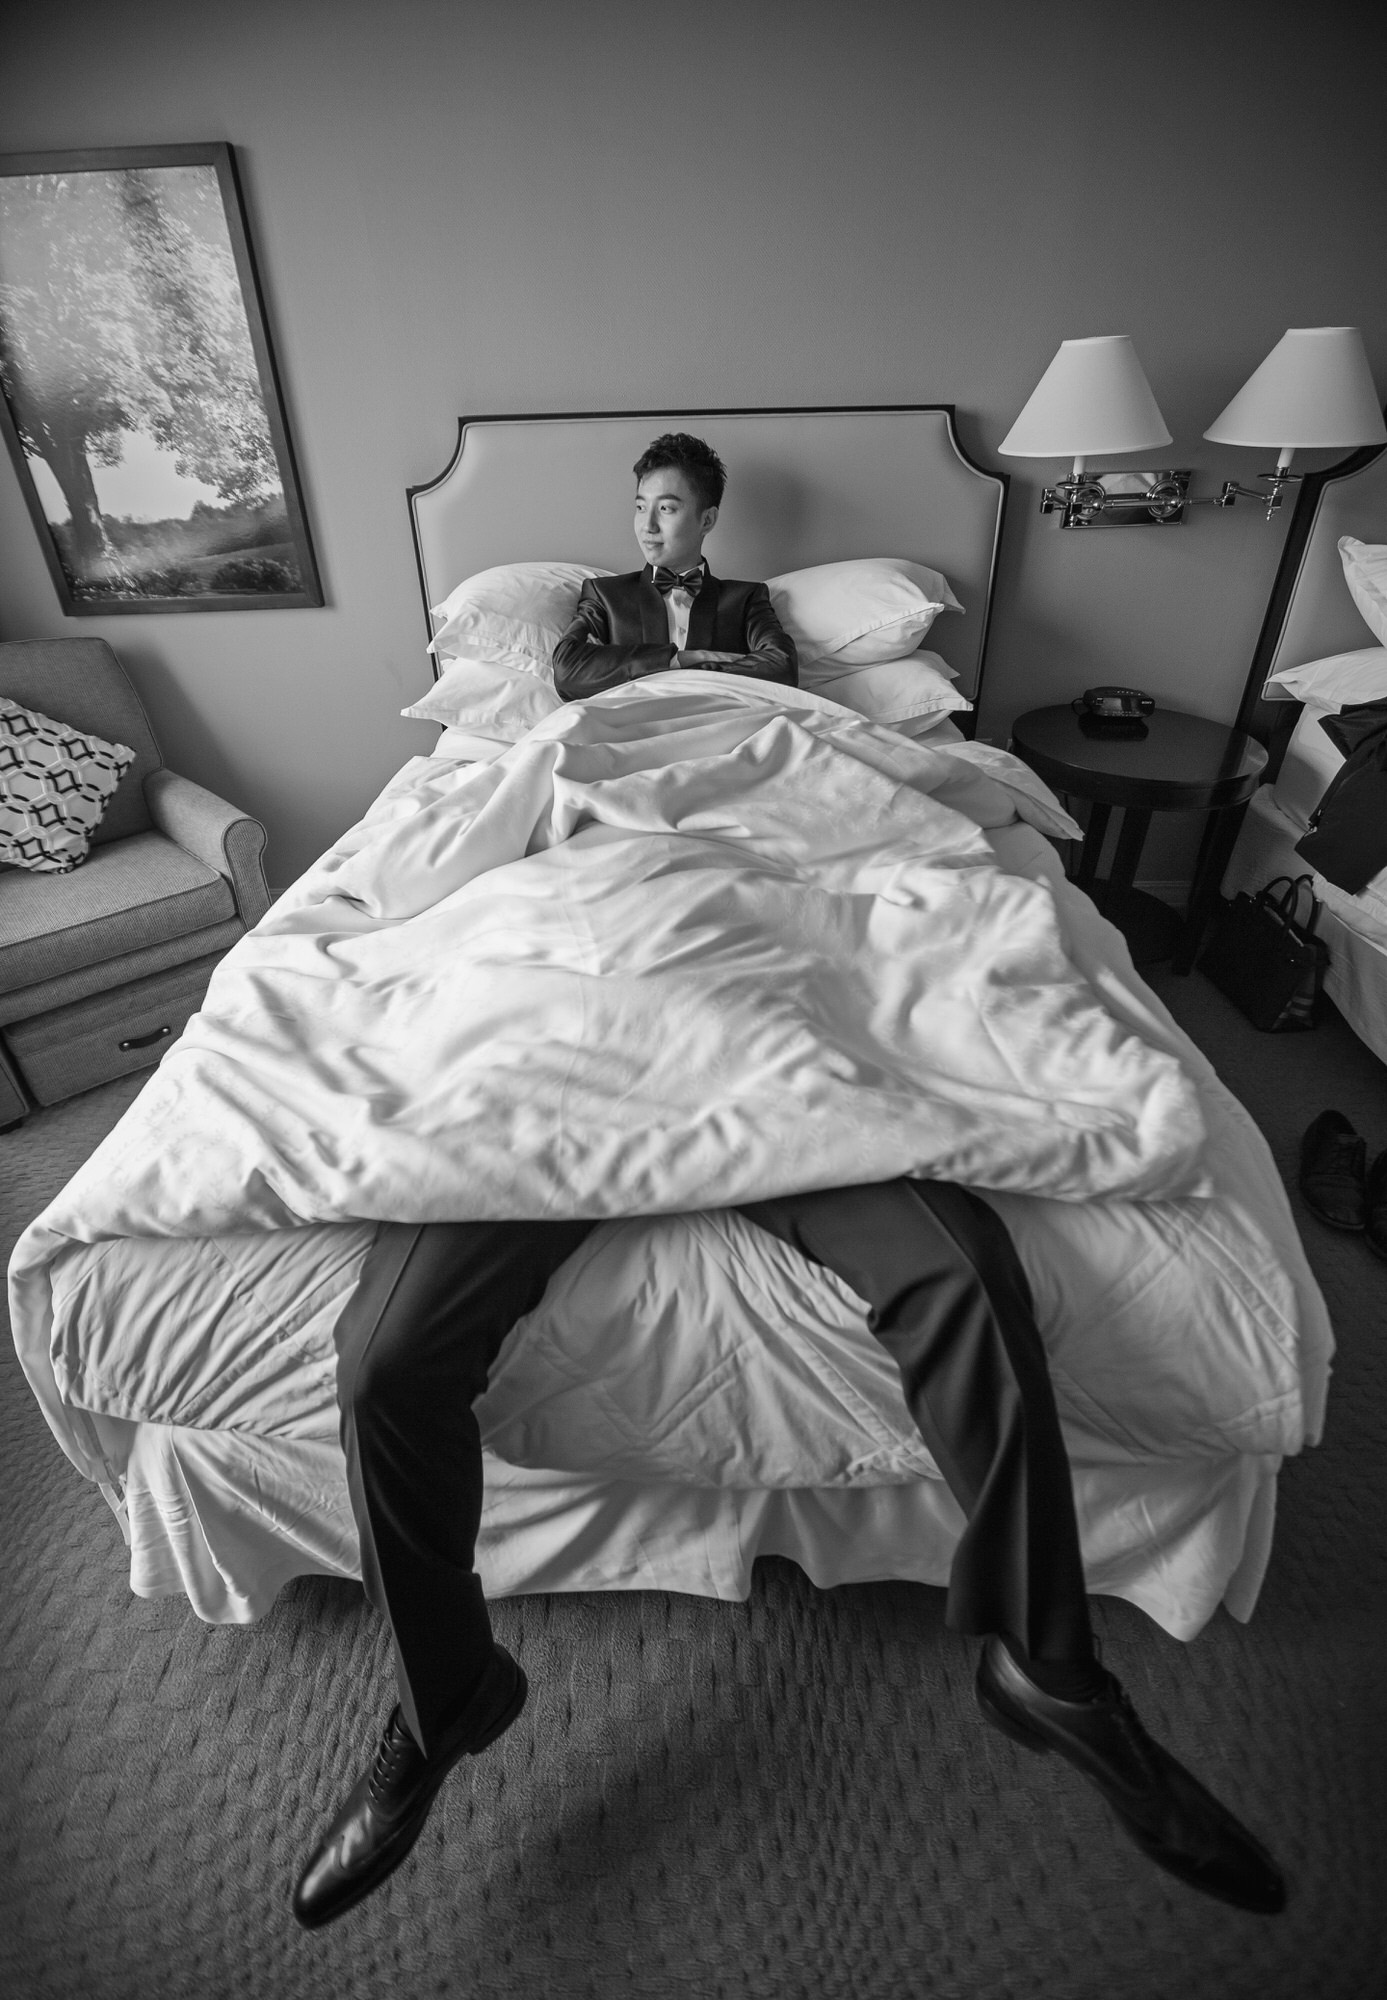 Funny photo of groom and legs in bed - photo by Ken Pak